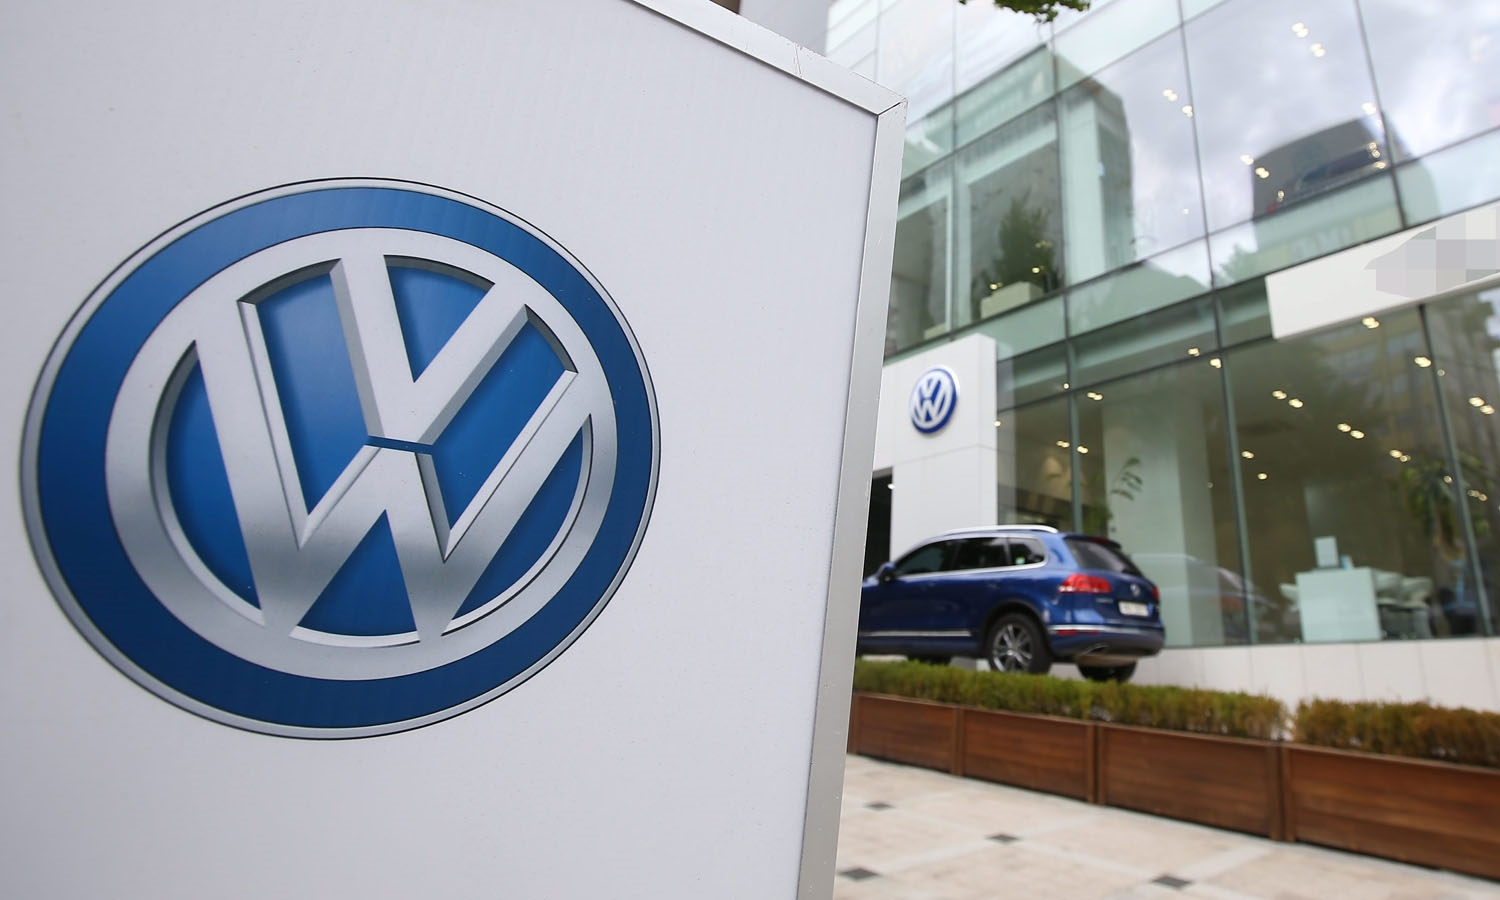 Volkswagen brand suspends new hirings till end of 2020